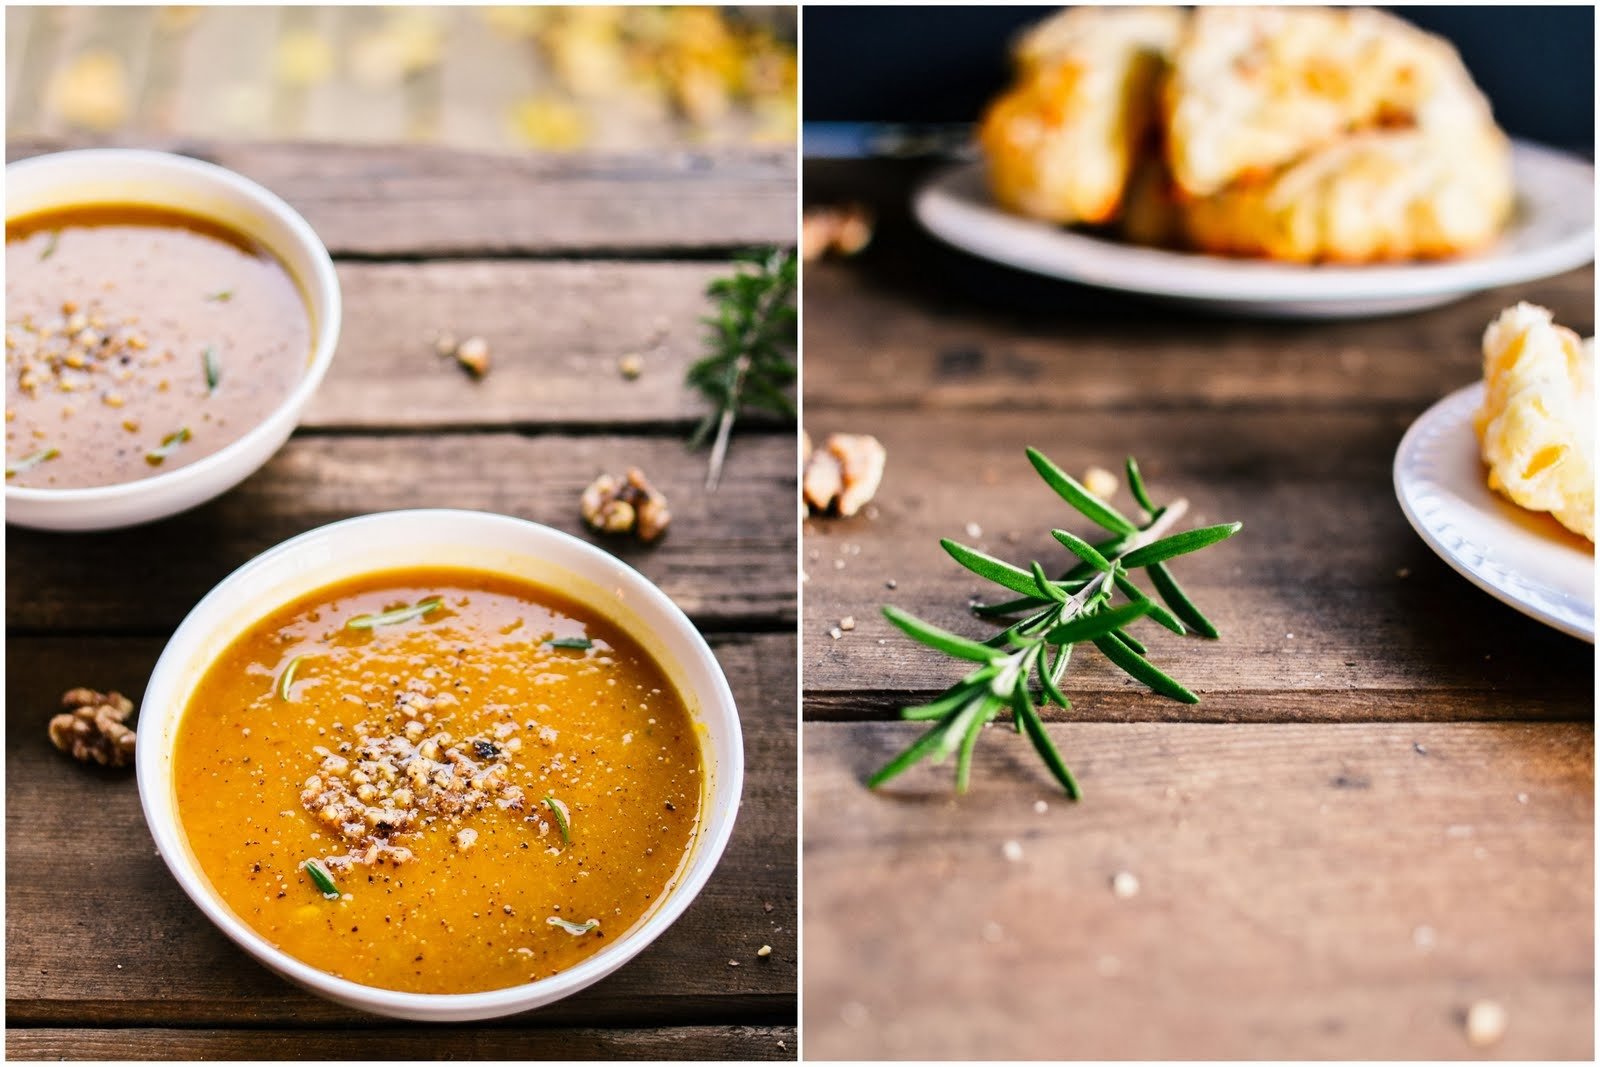 butternut+squash+soup+and+biscuits-002.jpg